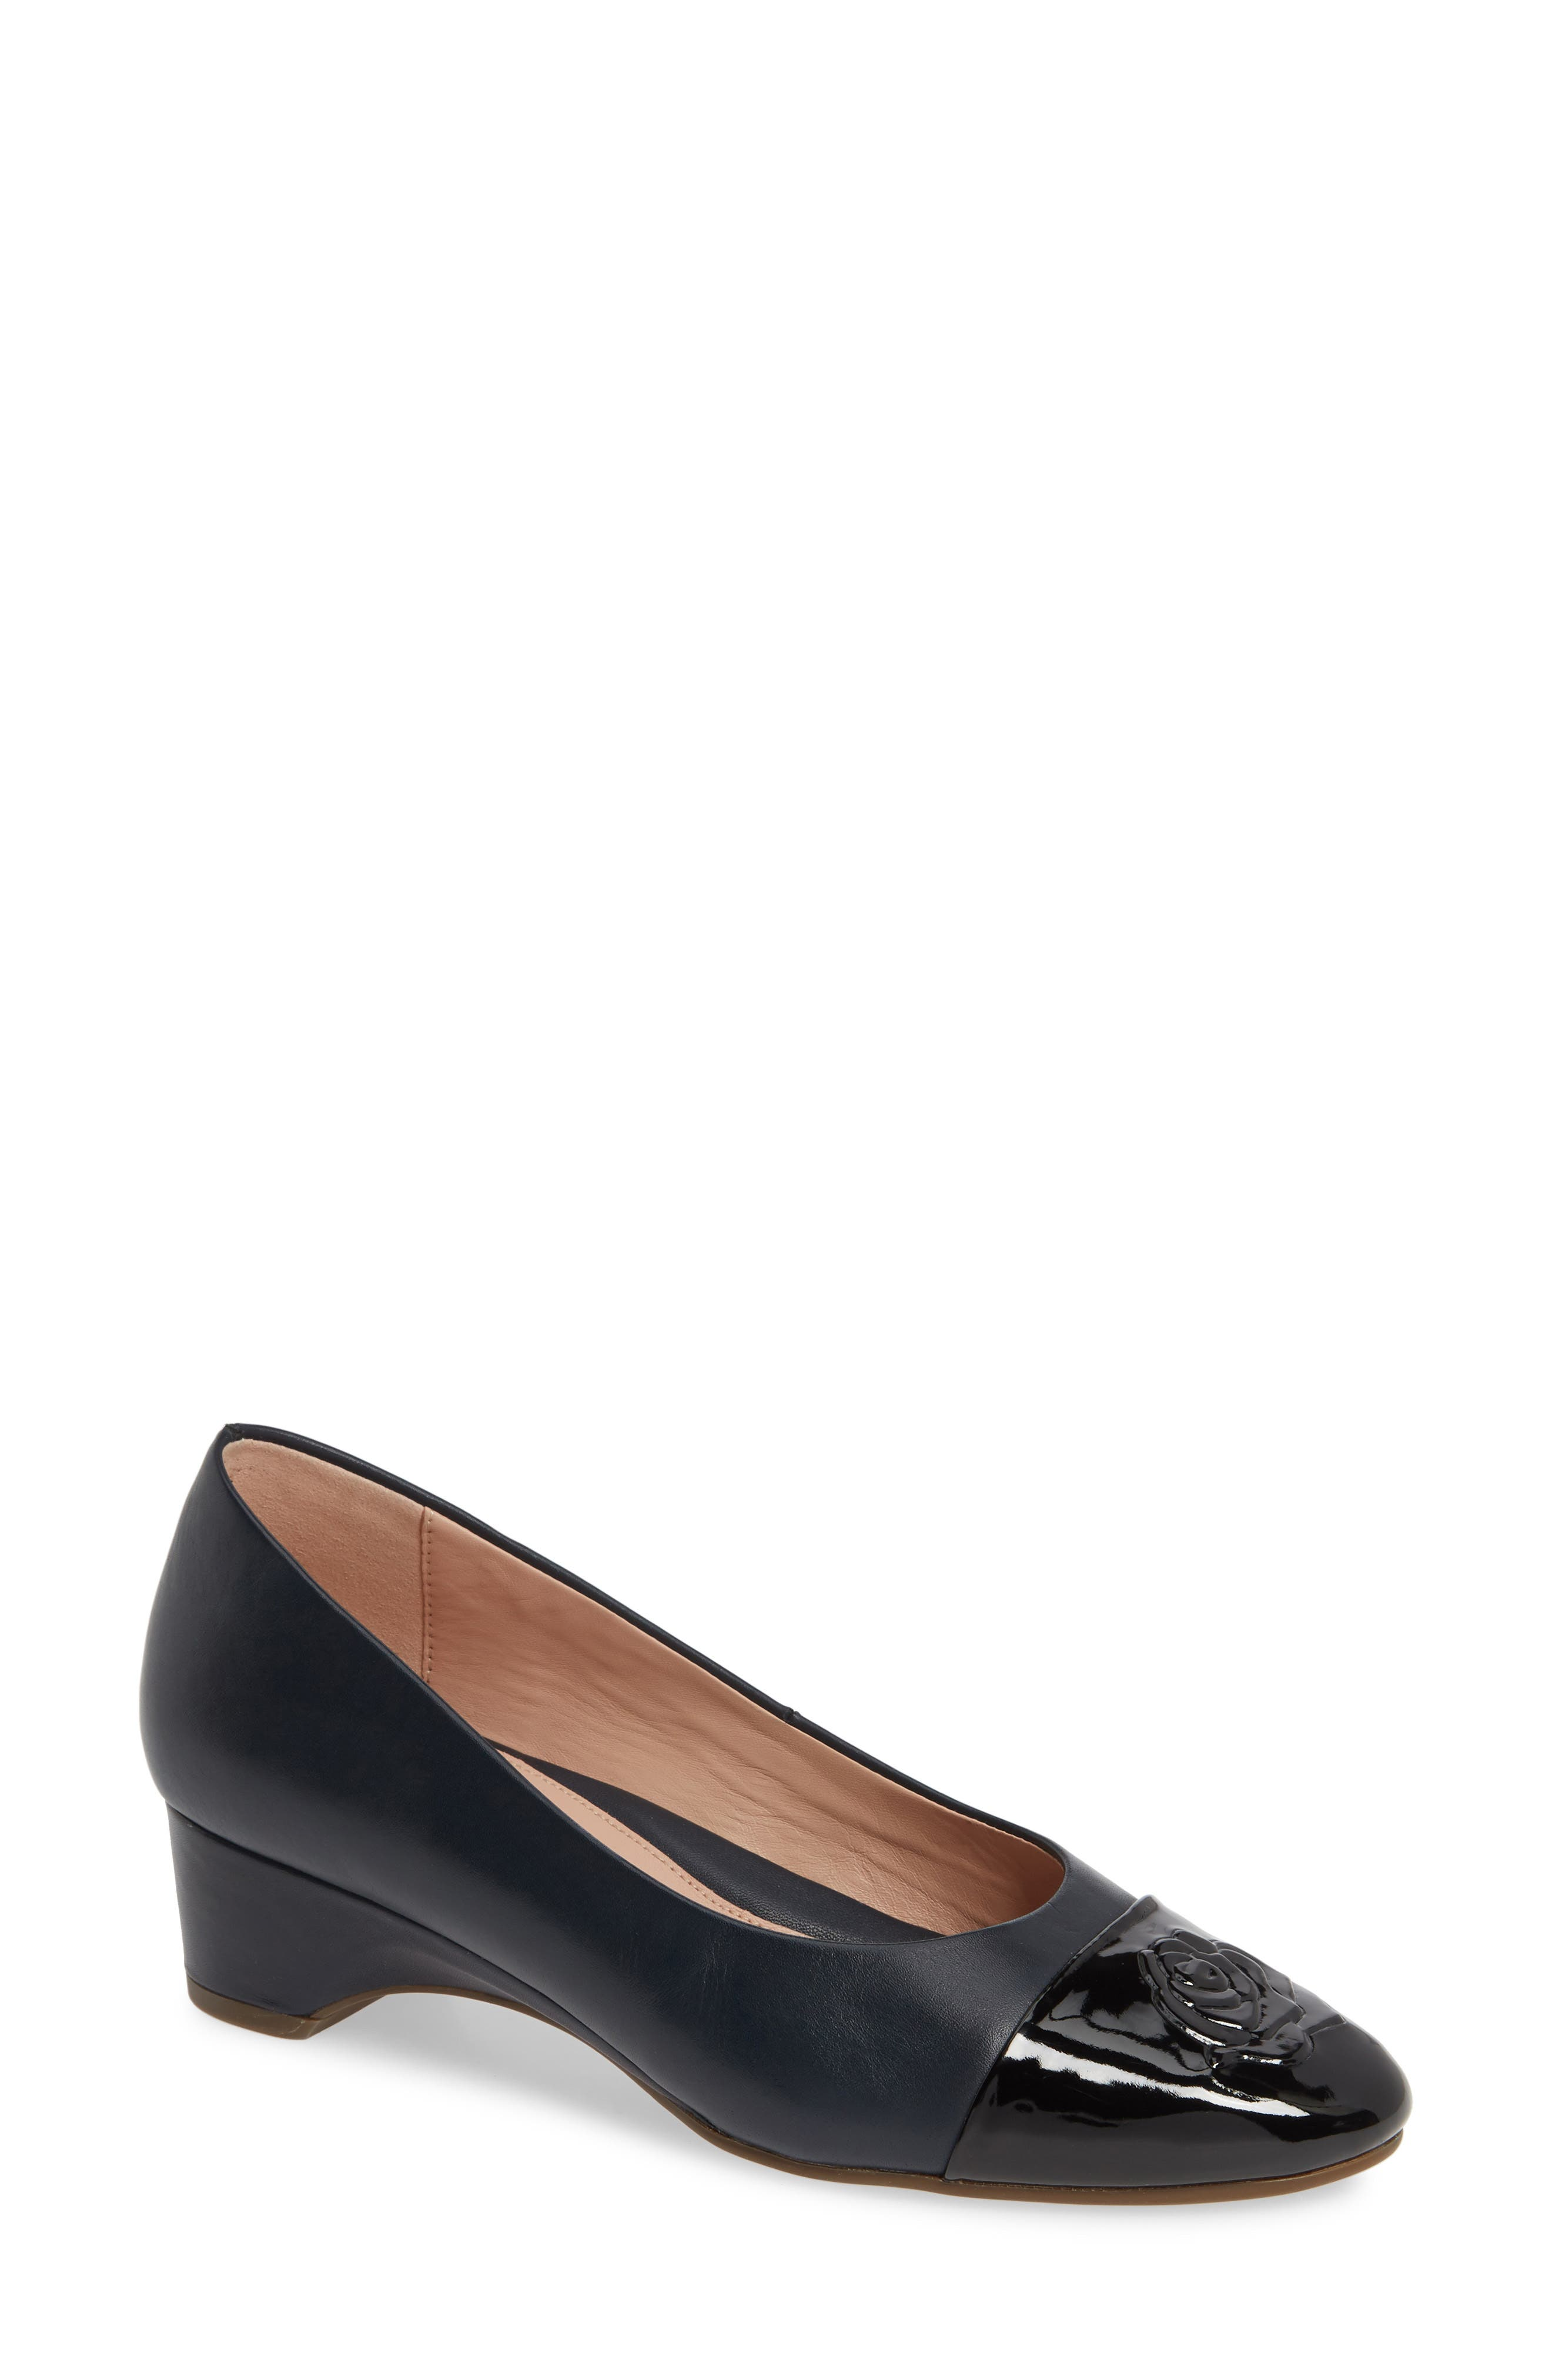 TARYN ROSE Babe Cap Toe Pump, Main, color, MIDNIGHT/ BLACK LEATHER